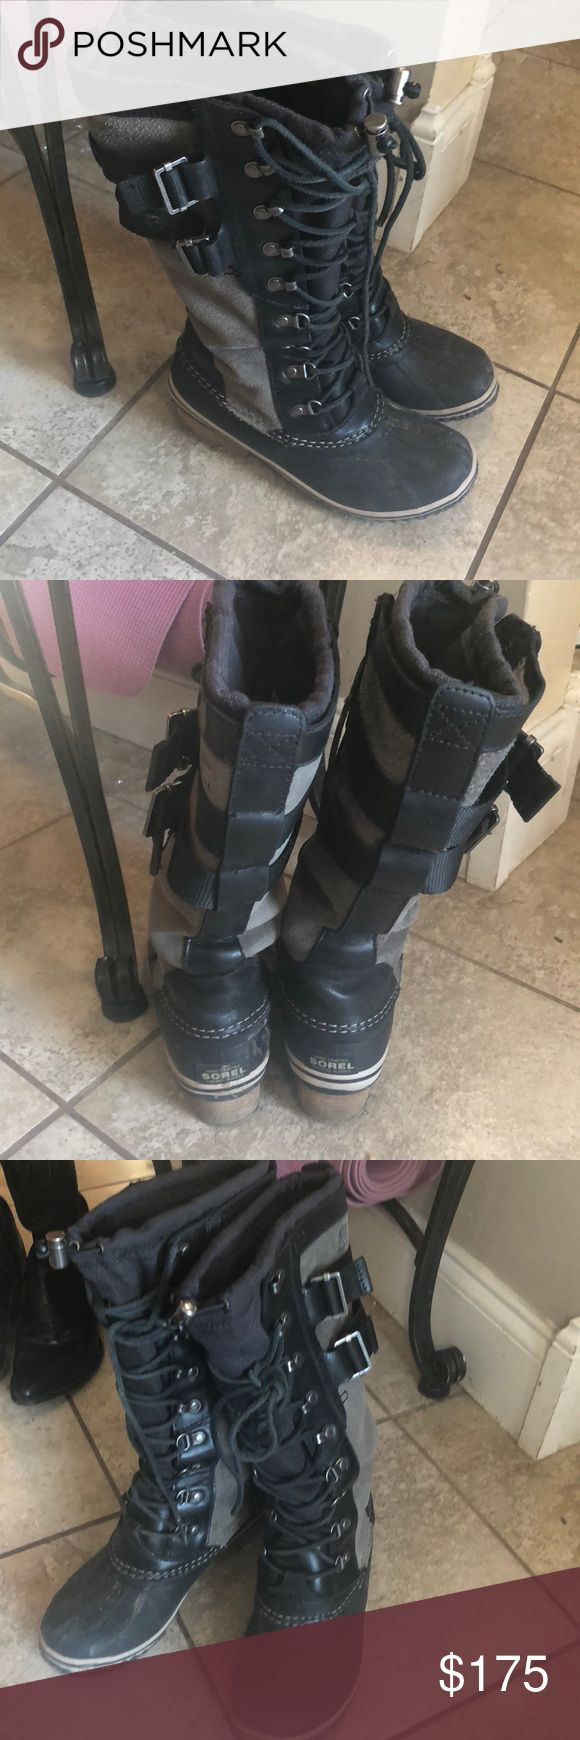 December sale!!Sorel winter boots I️ forgot the exact kind. I️ just bought them two weeks ago but then I️ splurged on a pair of sperrys AND mucks today so I'm looking  to sell these. They are super cute on! I️ will clean them it's just a little mud :) Sorel Shoes Winter & Rain Boots